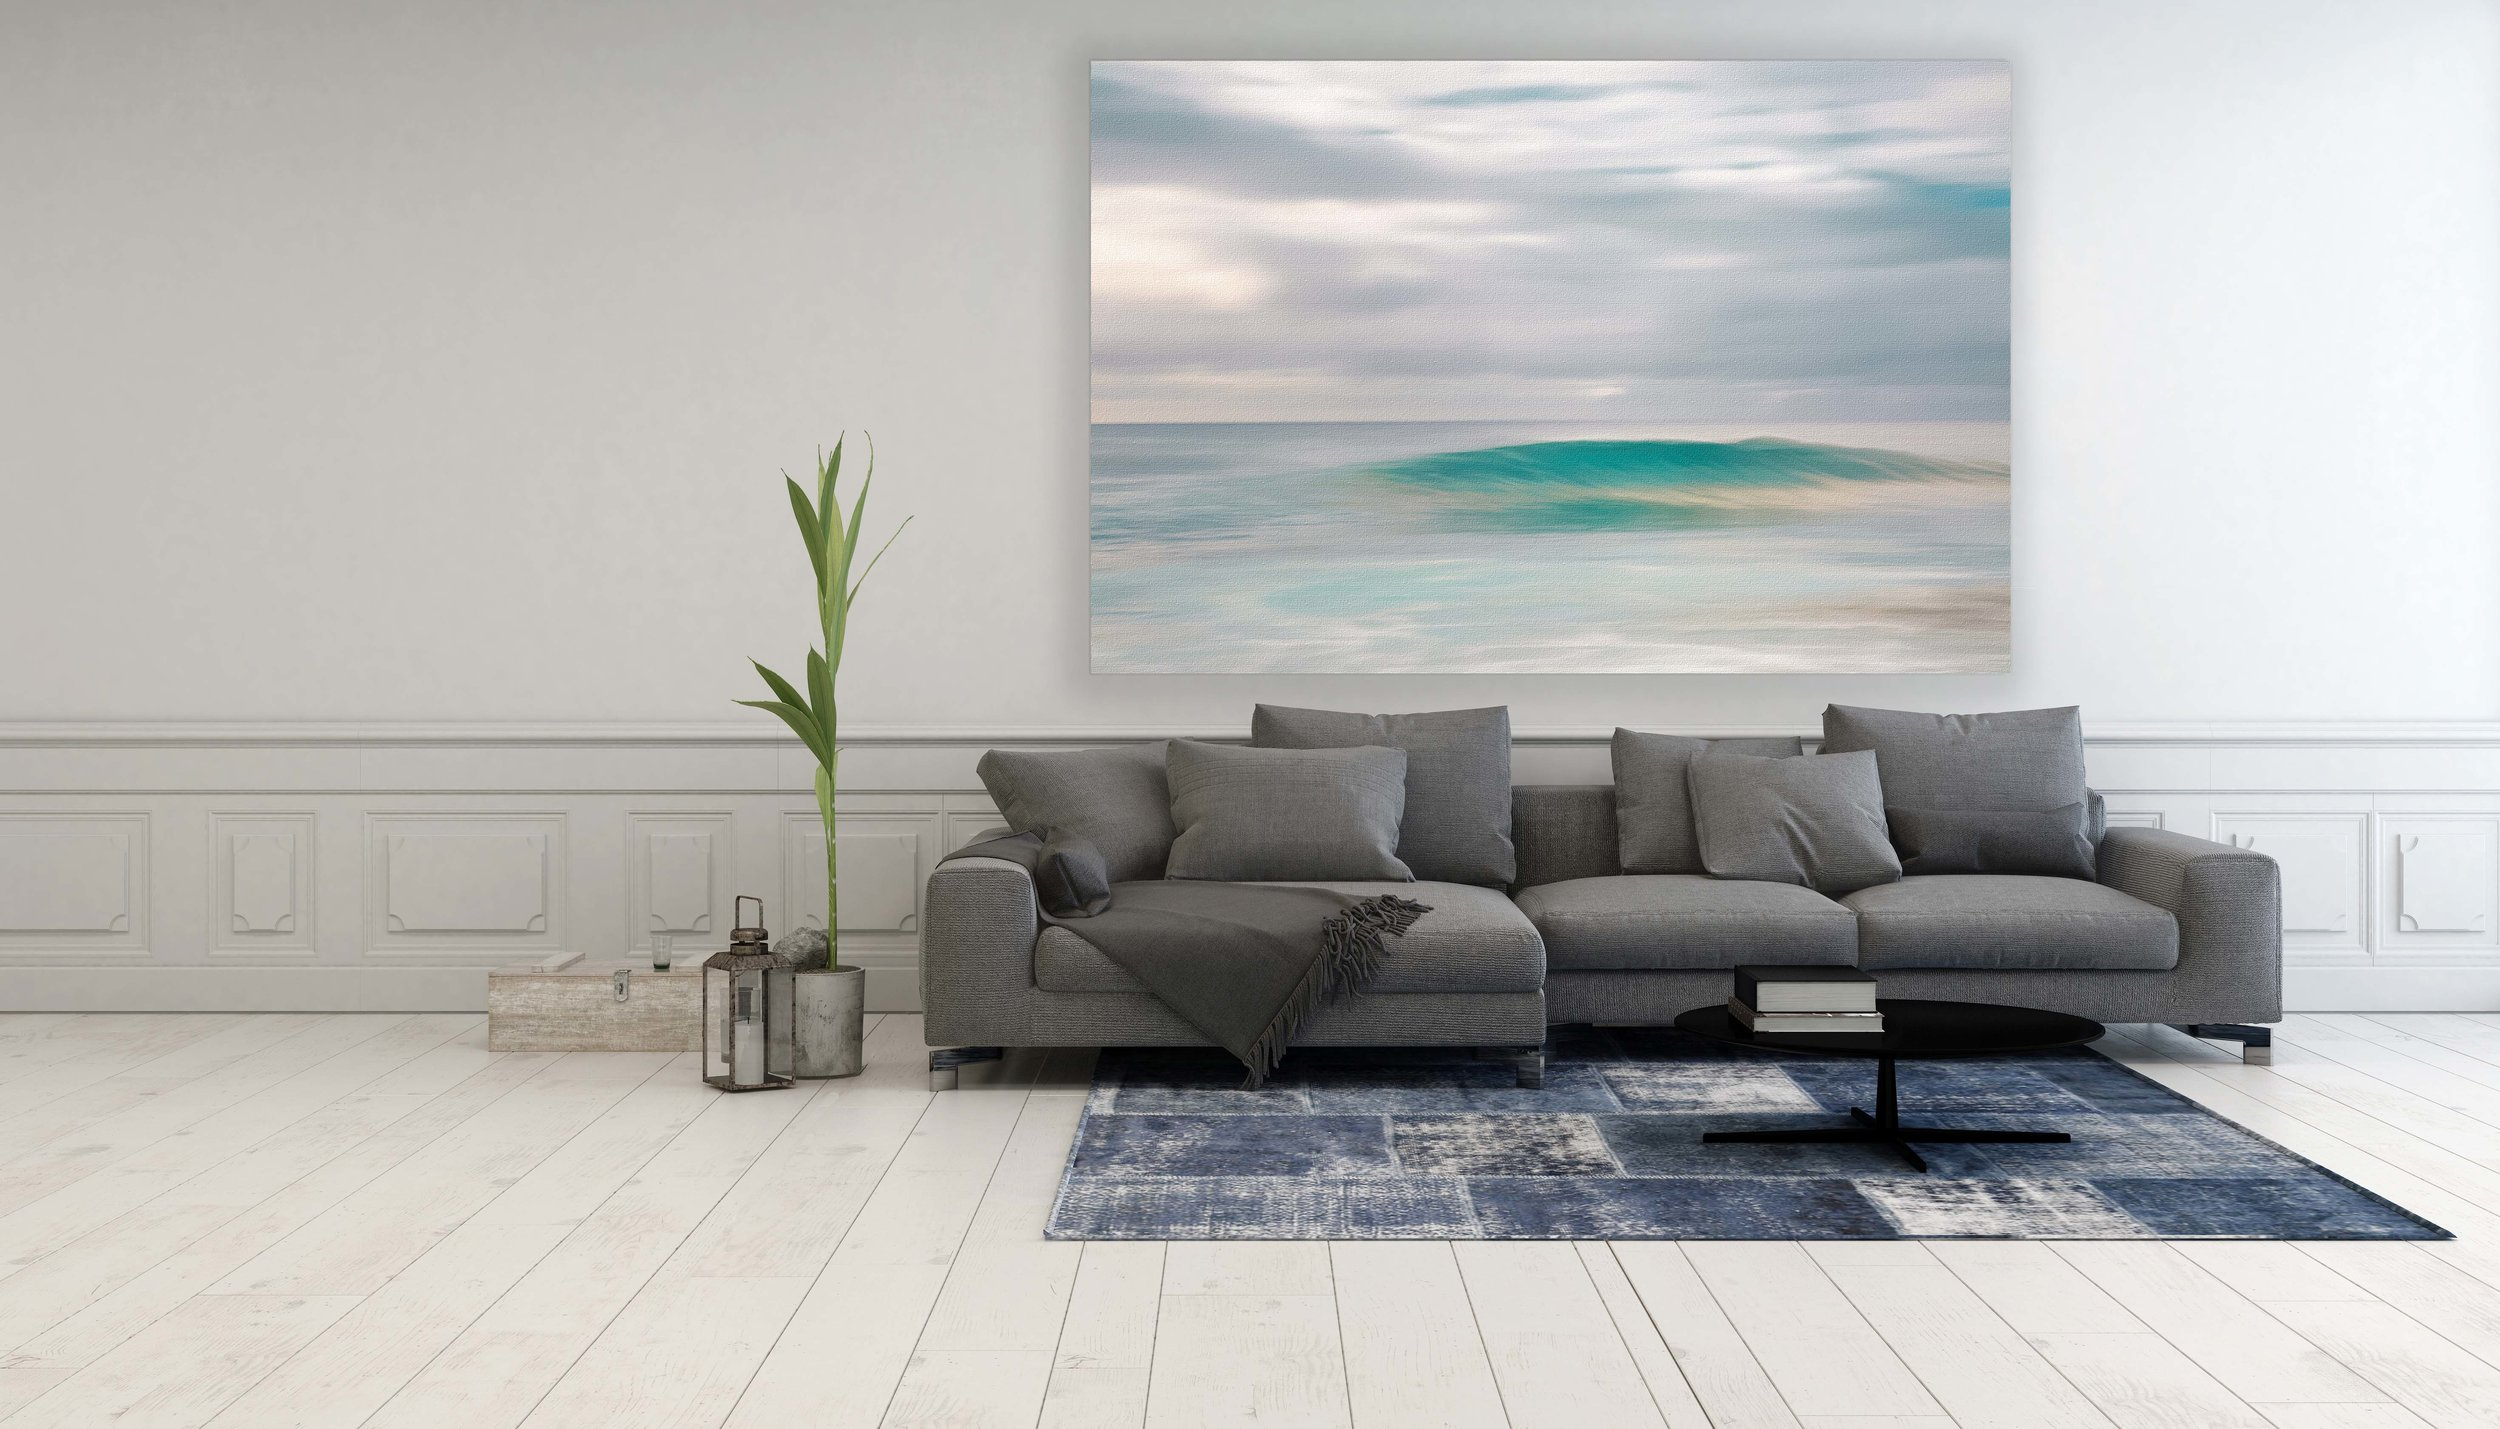 painted wave grey couch.jpg